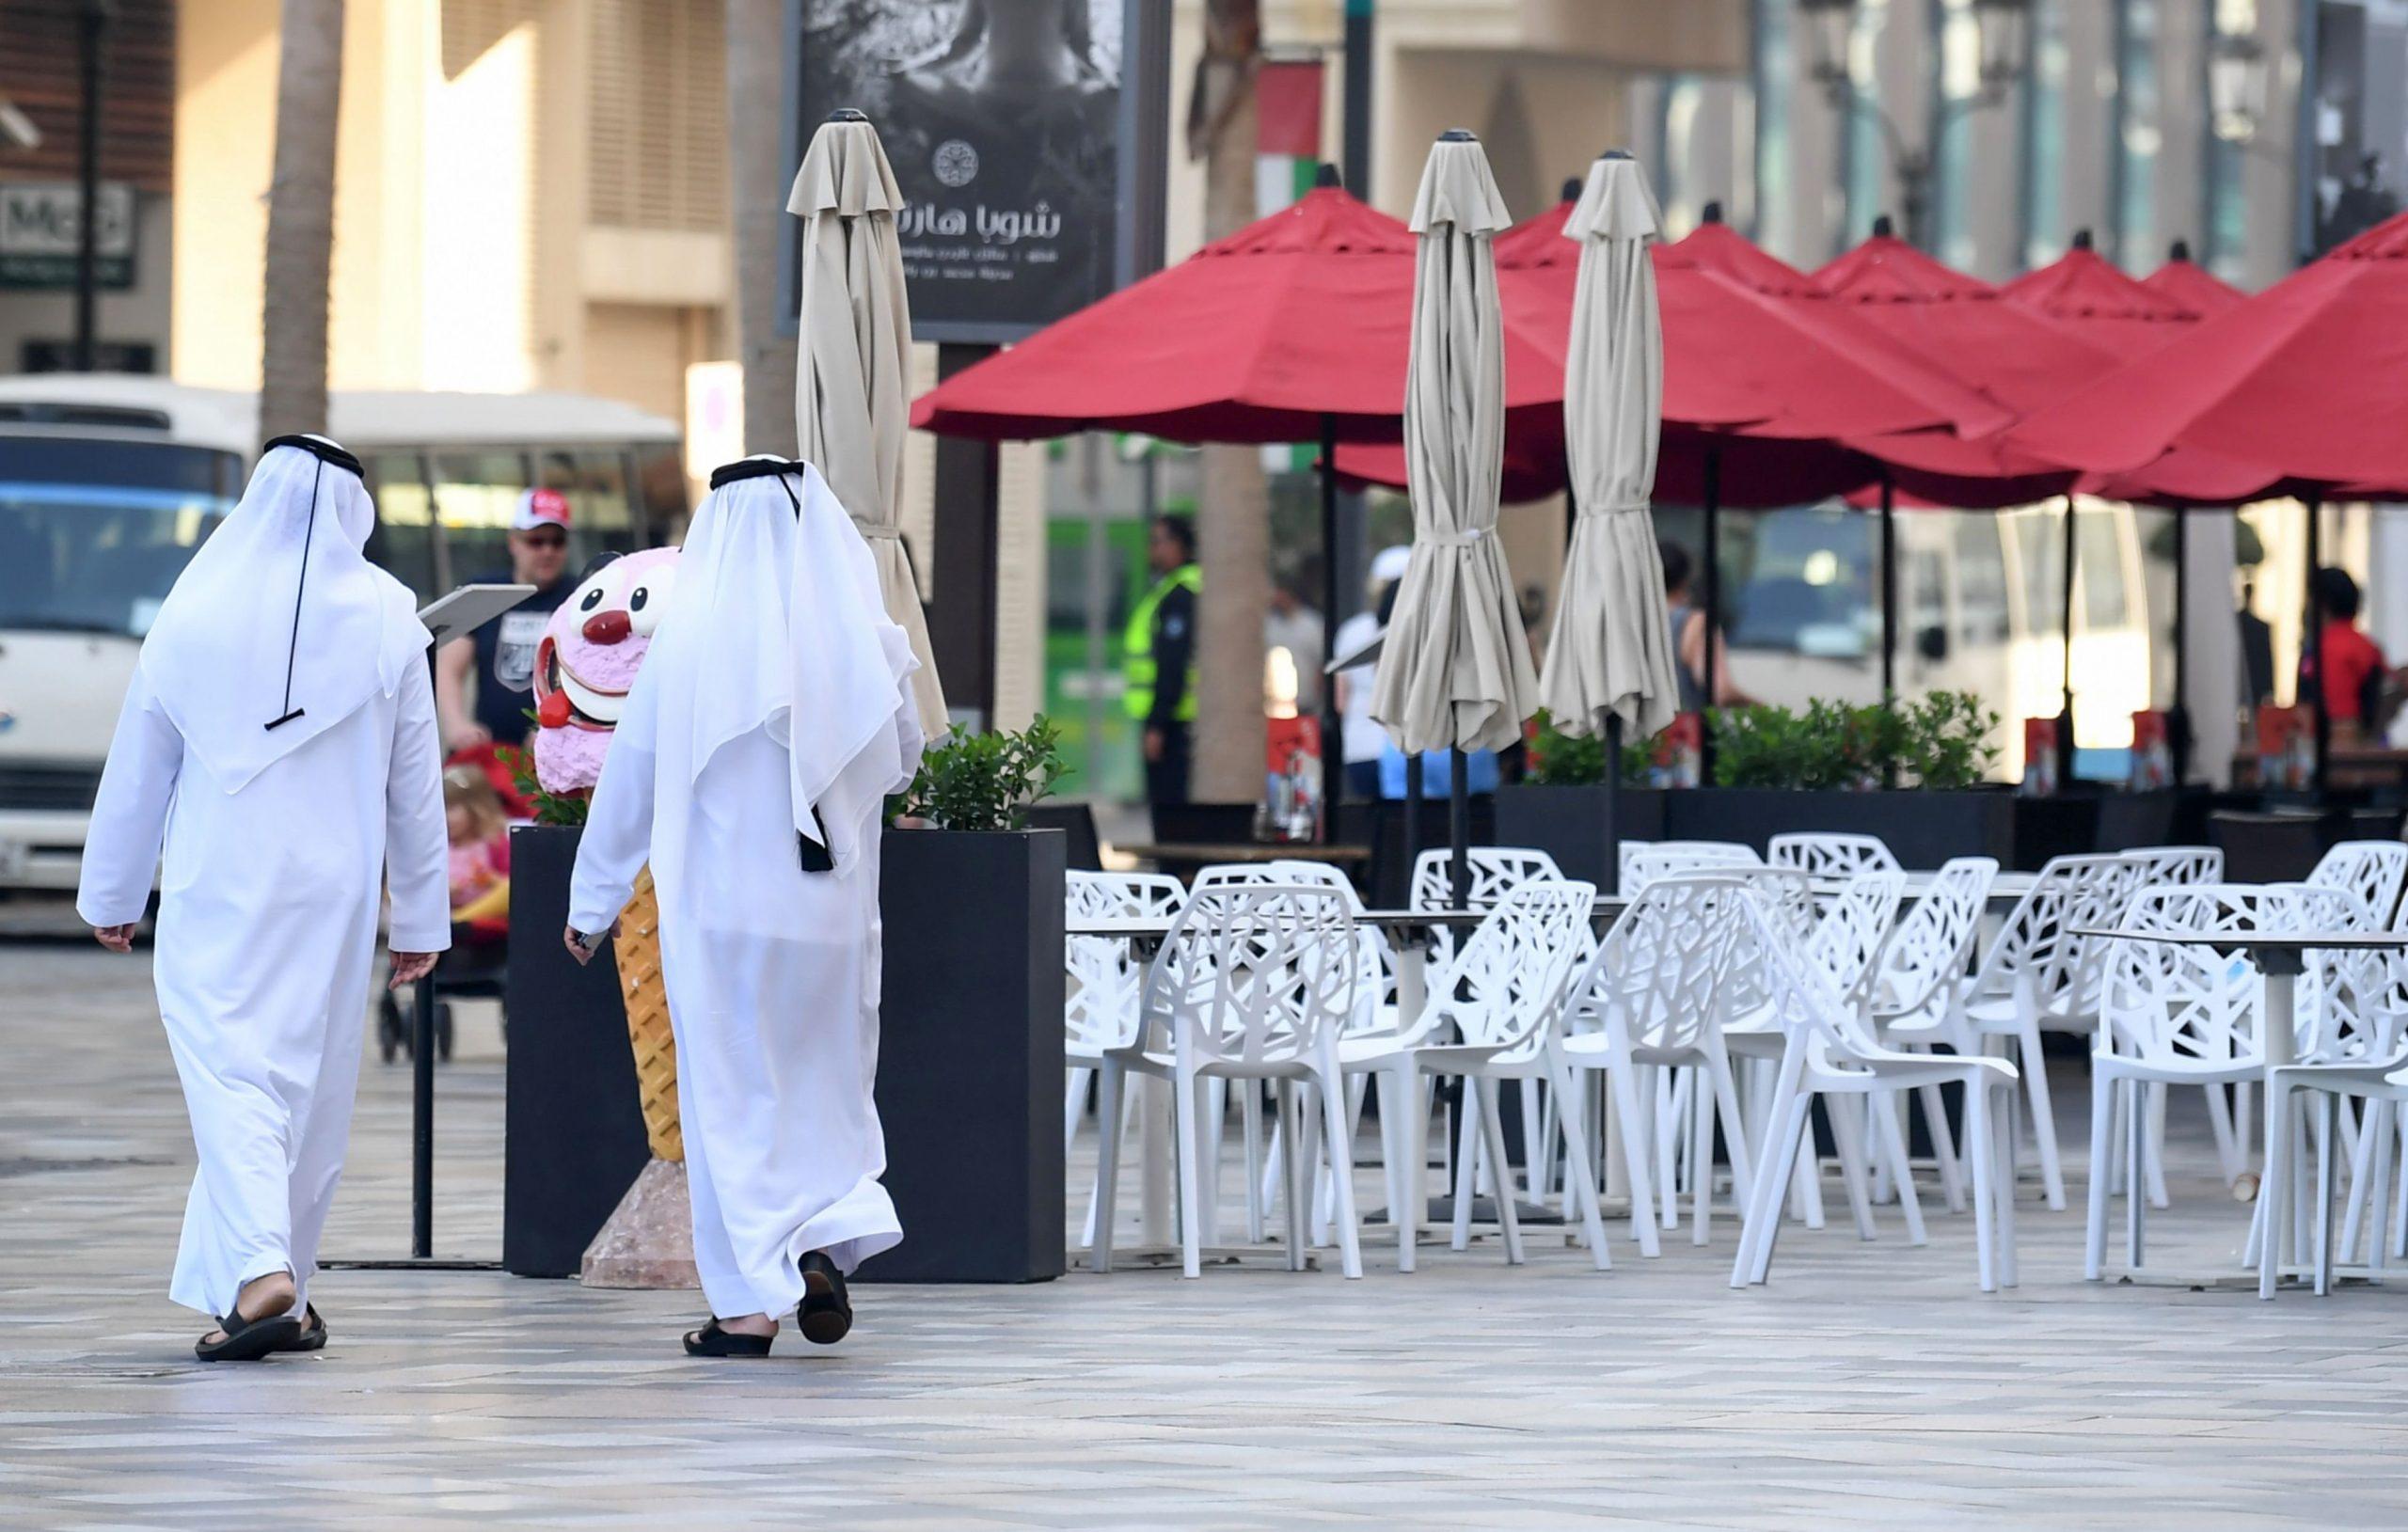 CNN: The UAE is closing all shopping malls and food markets for two weeks